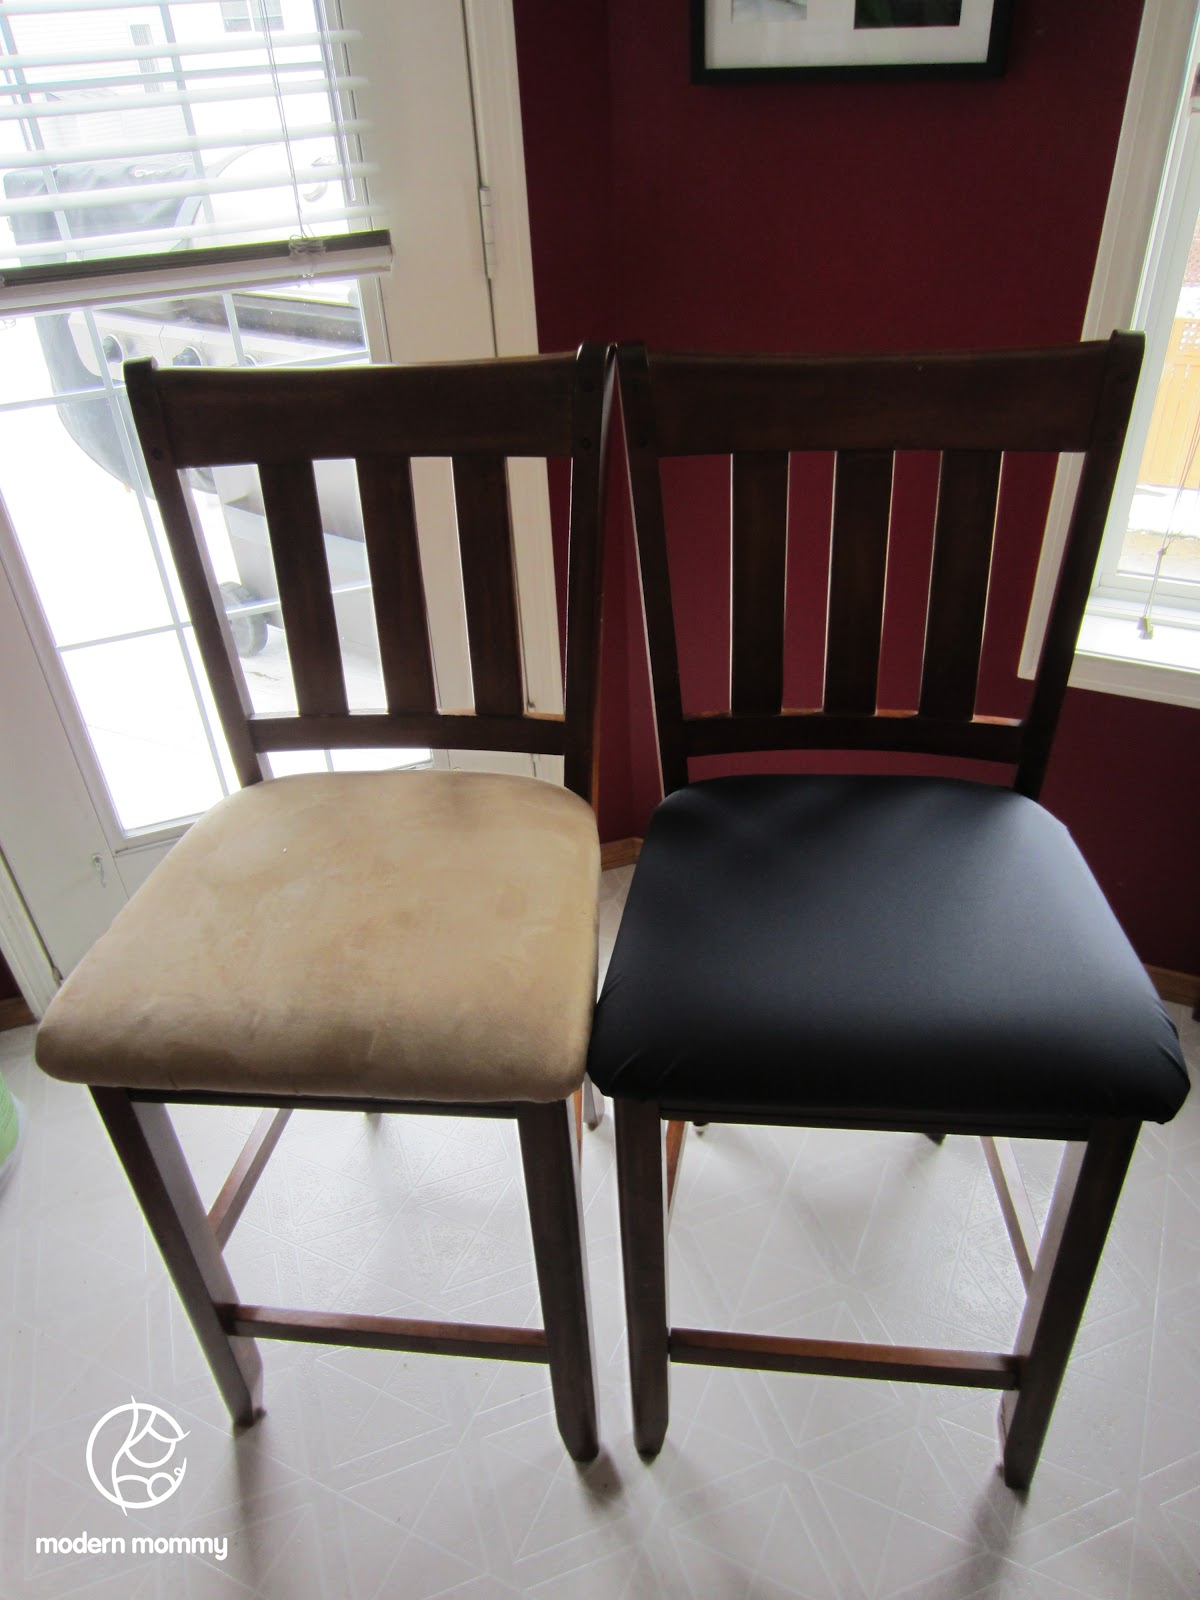 Modern Mommy Home Diy Reupholstered Dining Chairs